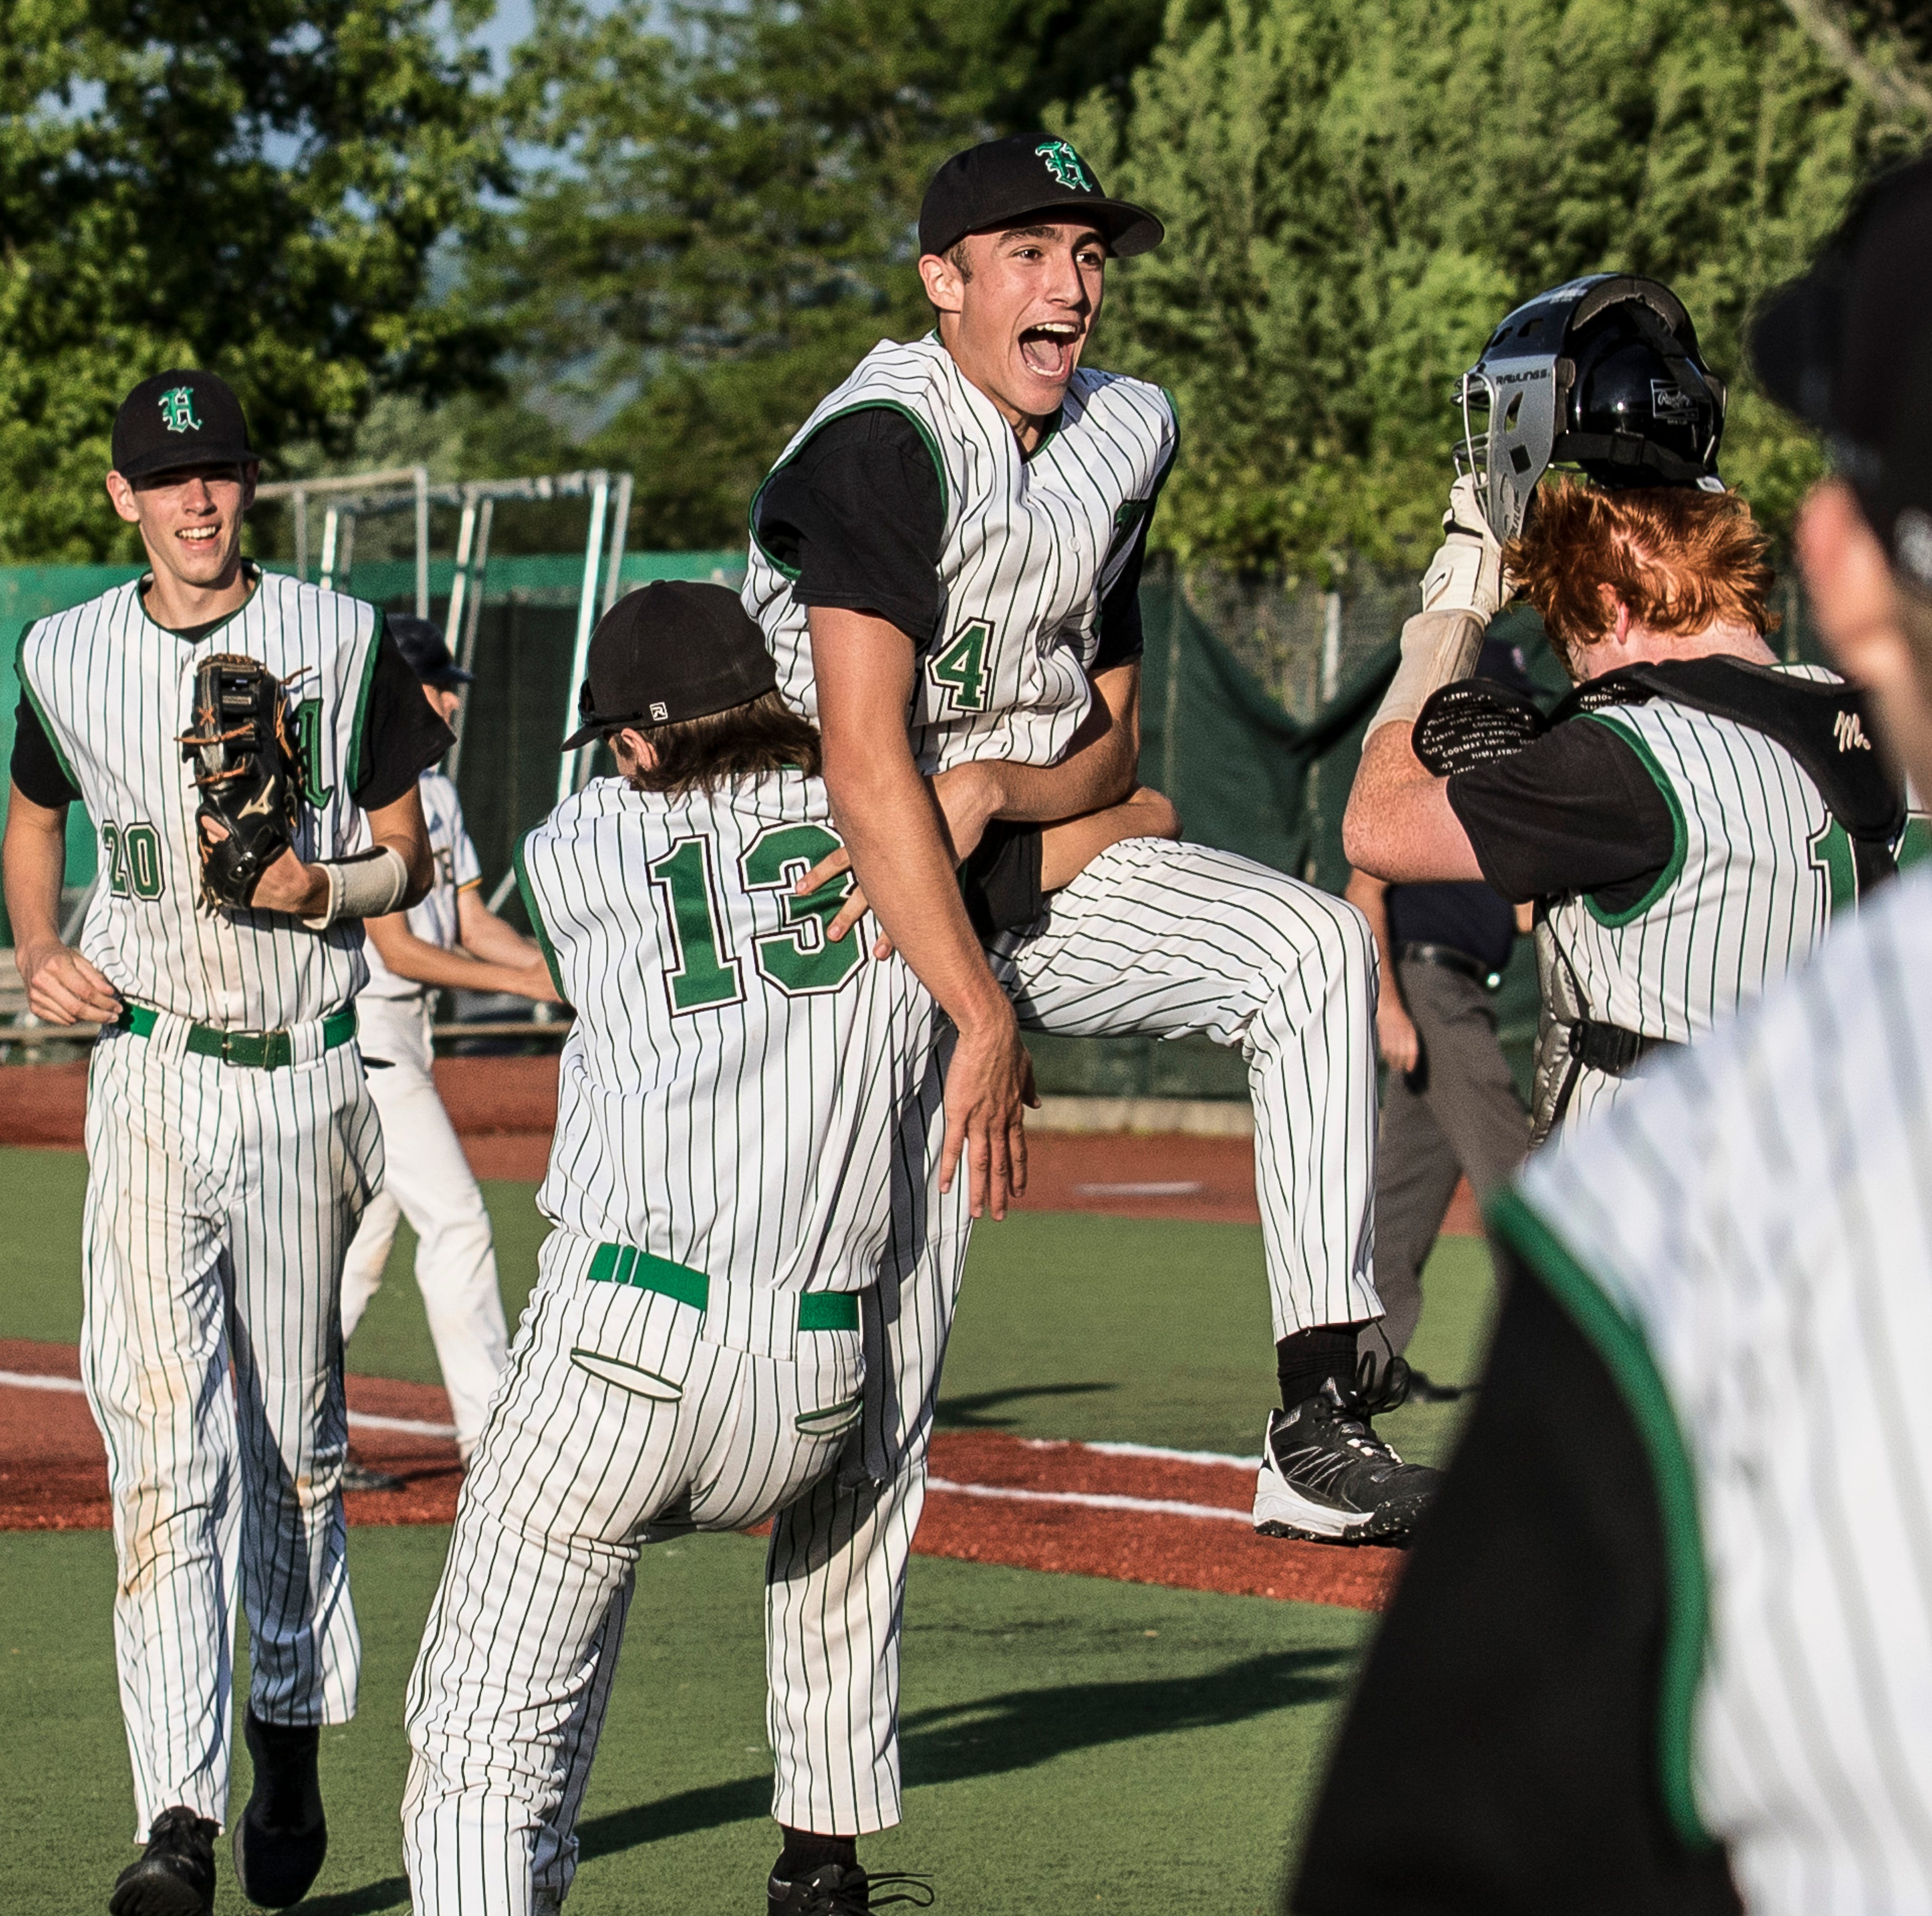 OHIO HS BASEBALL: Huntington advances to D-IV District Final win 6-5 win over Eastern